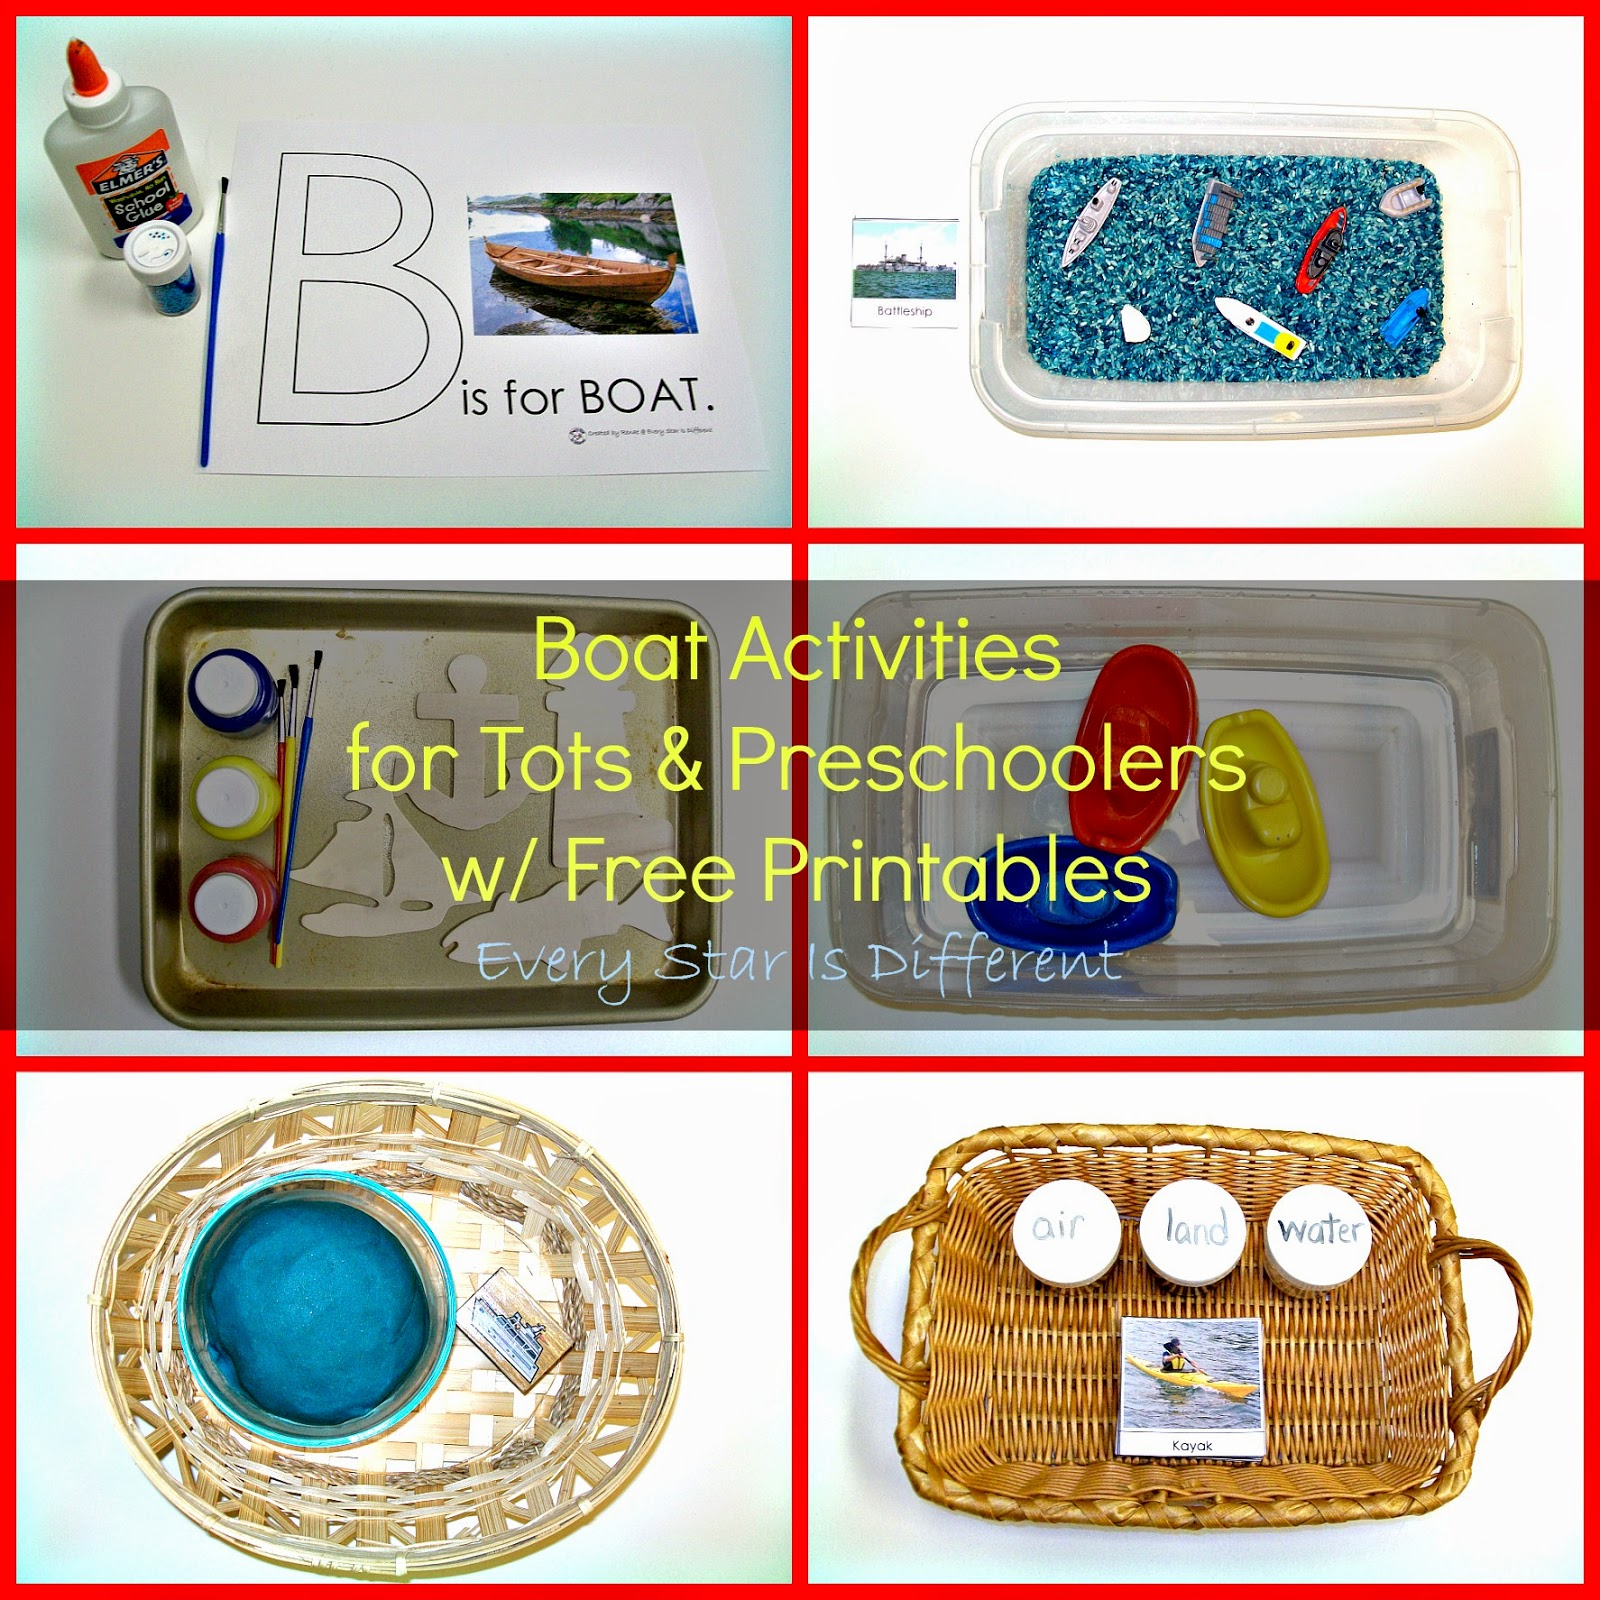 Boat Activities for Tots & Preschoolers